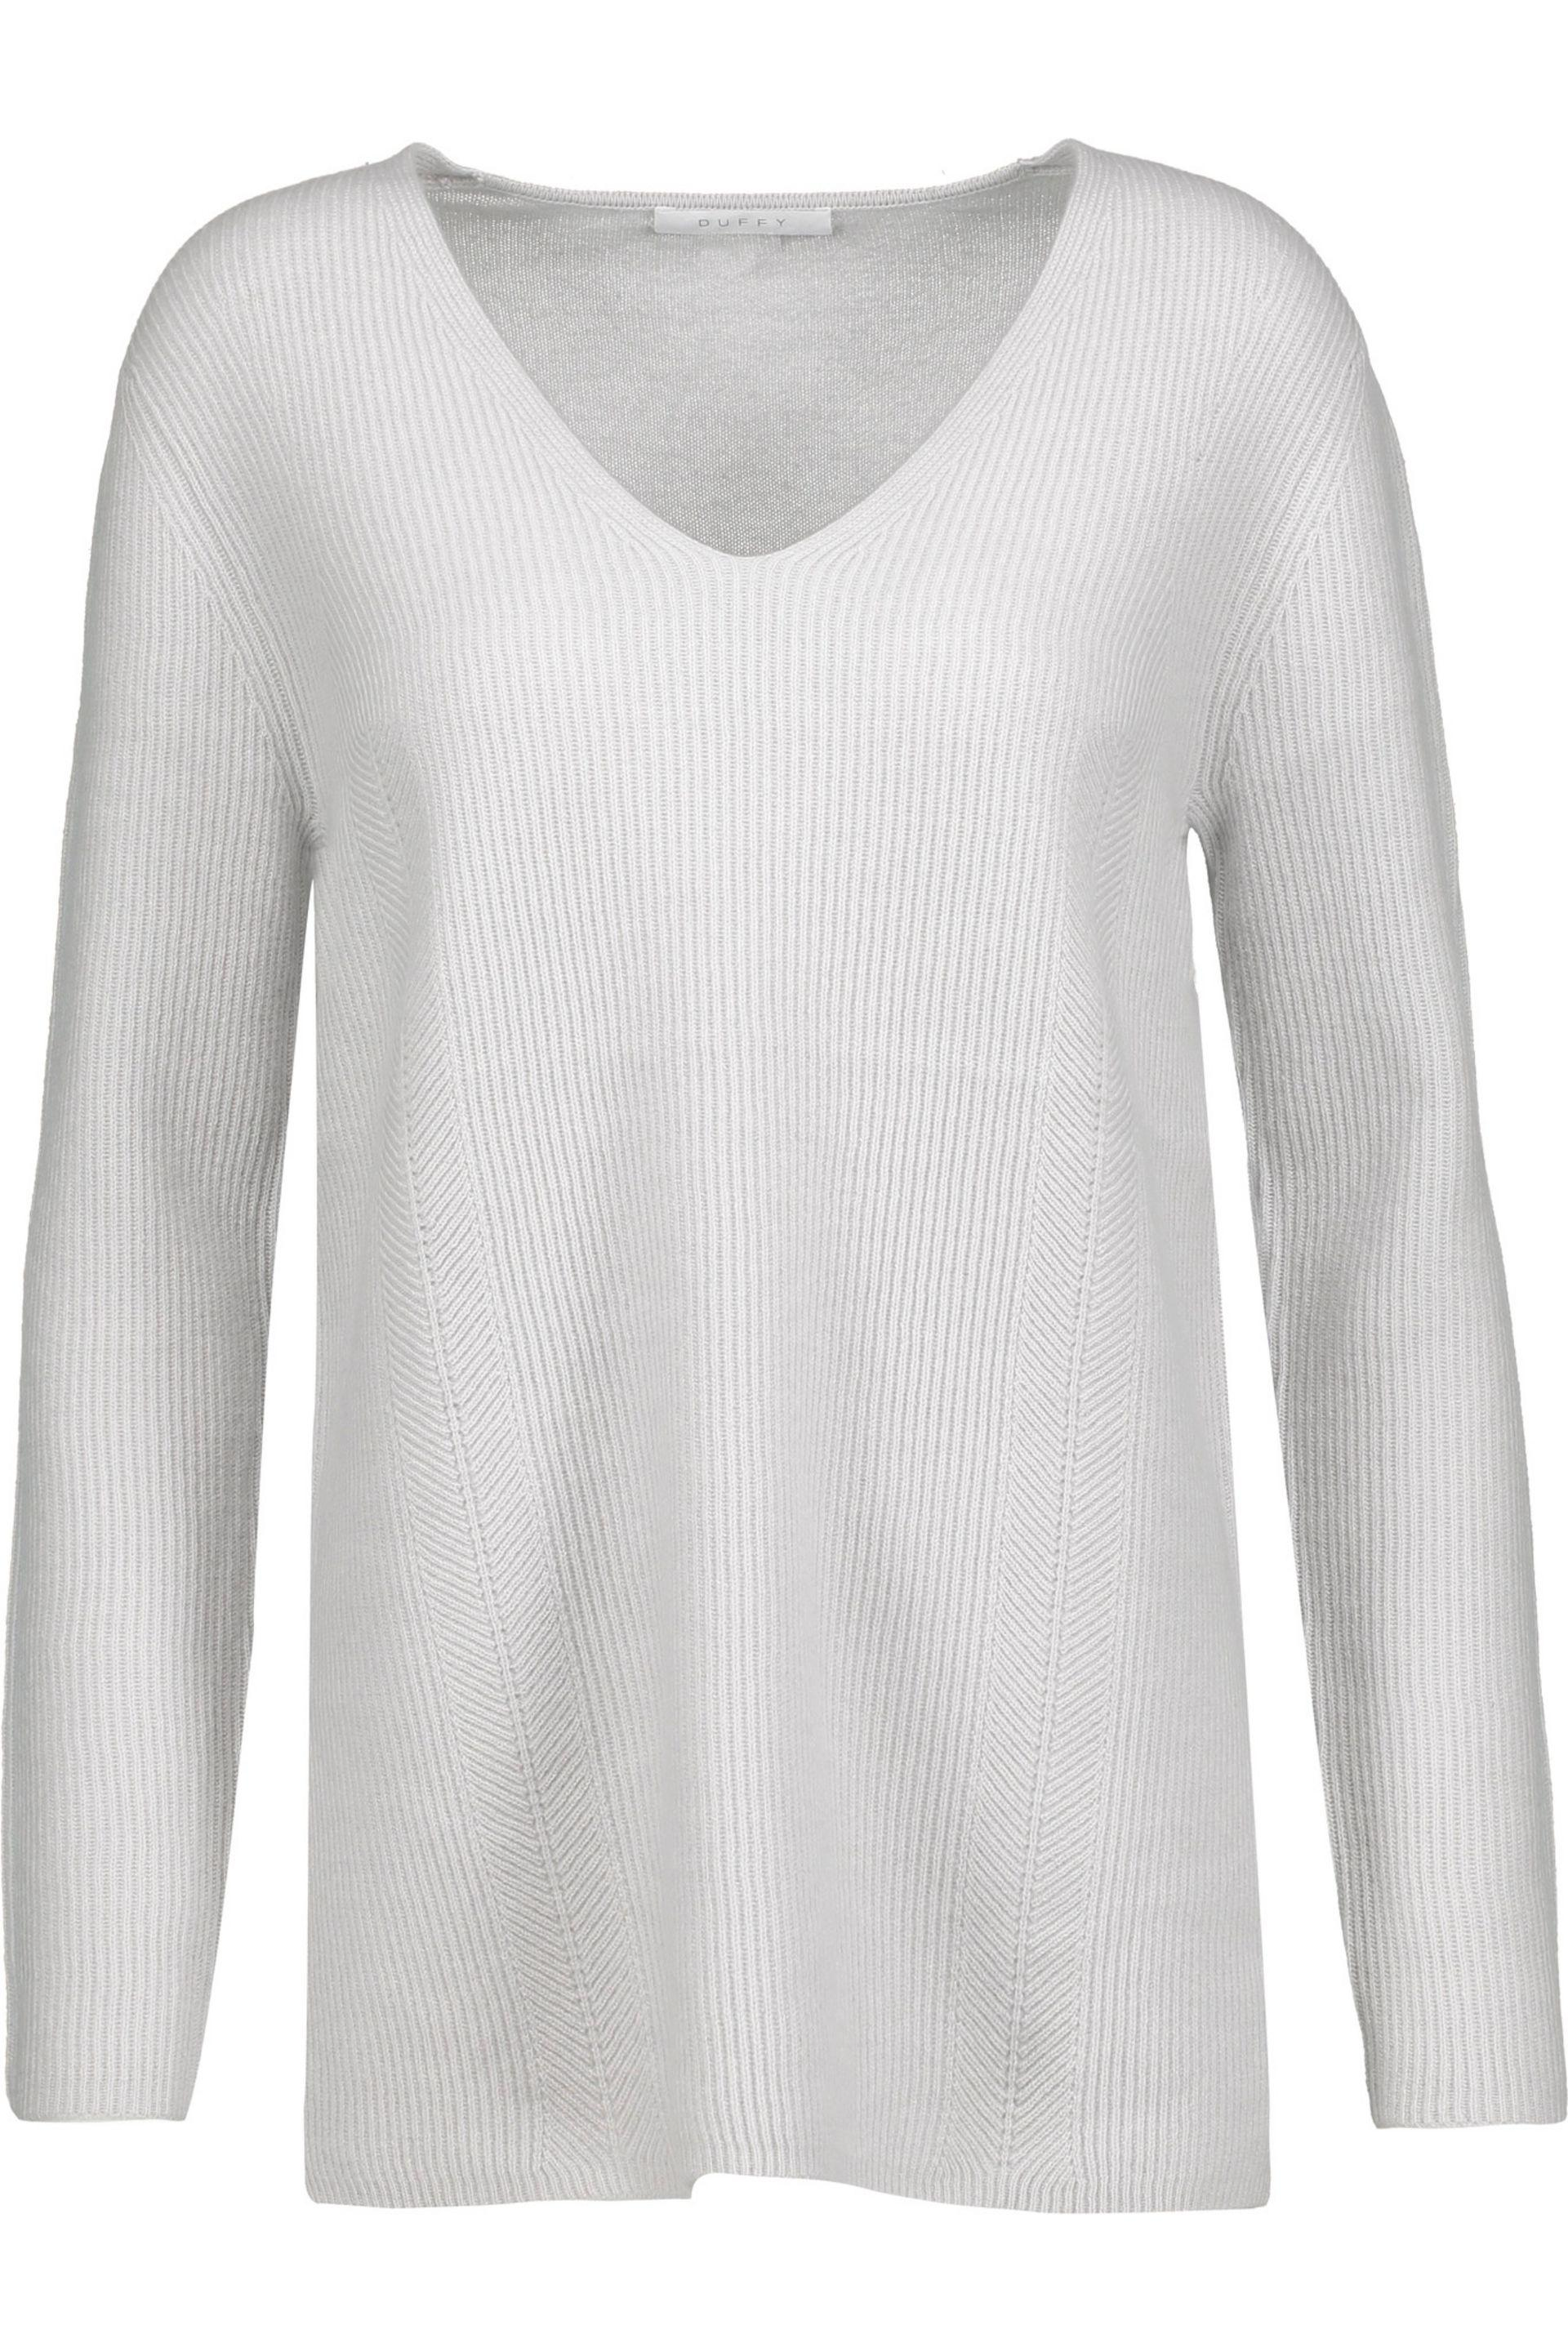 Duffy Ribbed Cashmere Sweater in White | Lyst